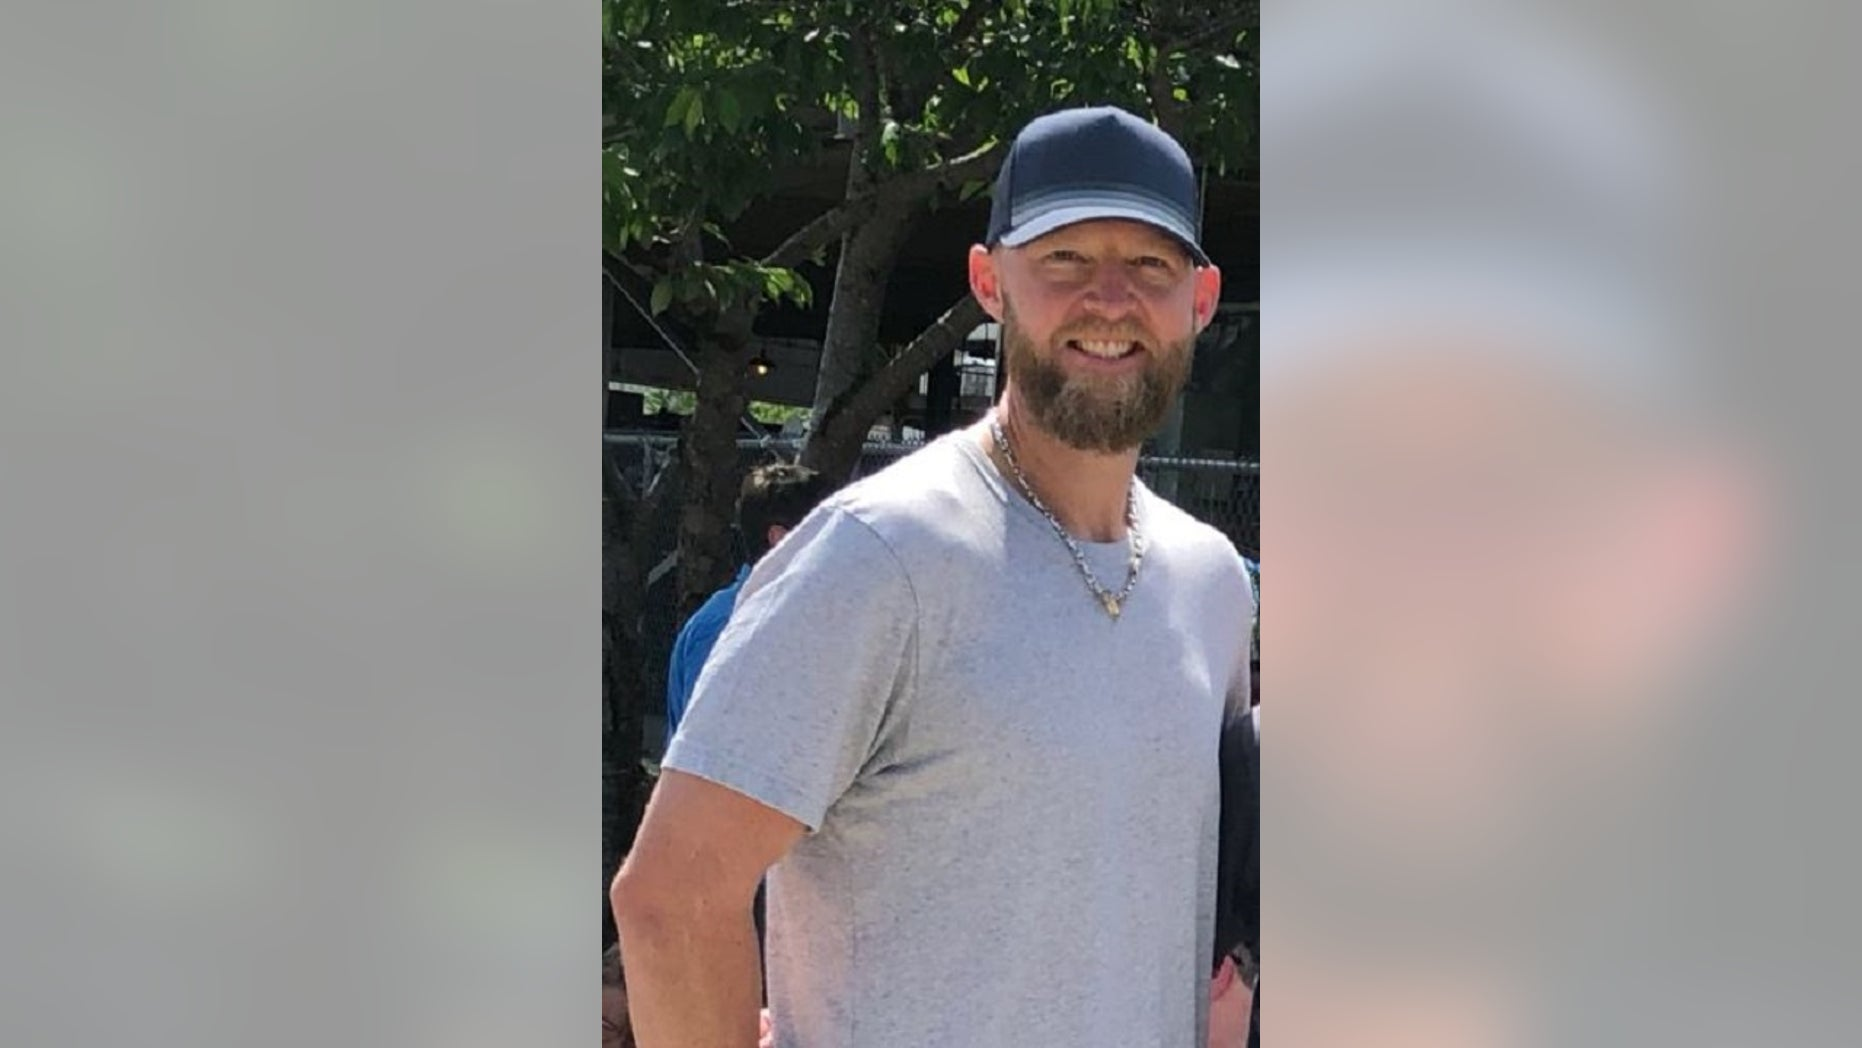 Chris Duncan, 37, is stepping aside from his sports radio gig in St. Louis to focus on his battle against brain cancer, the station says.